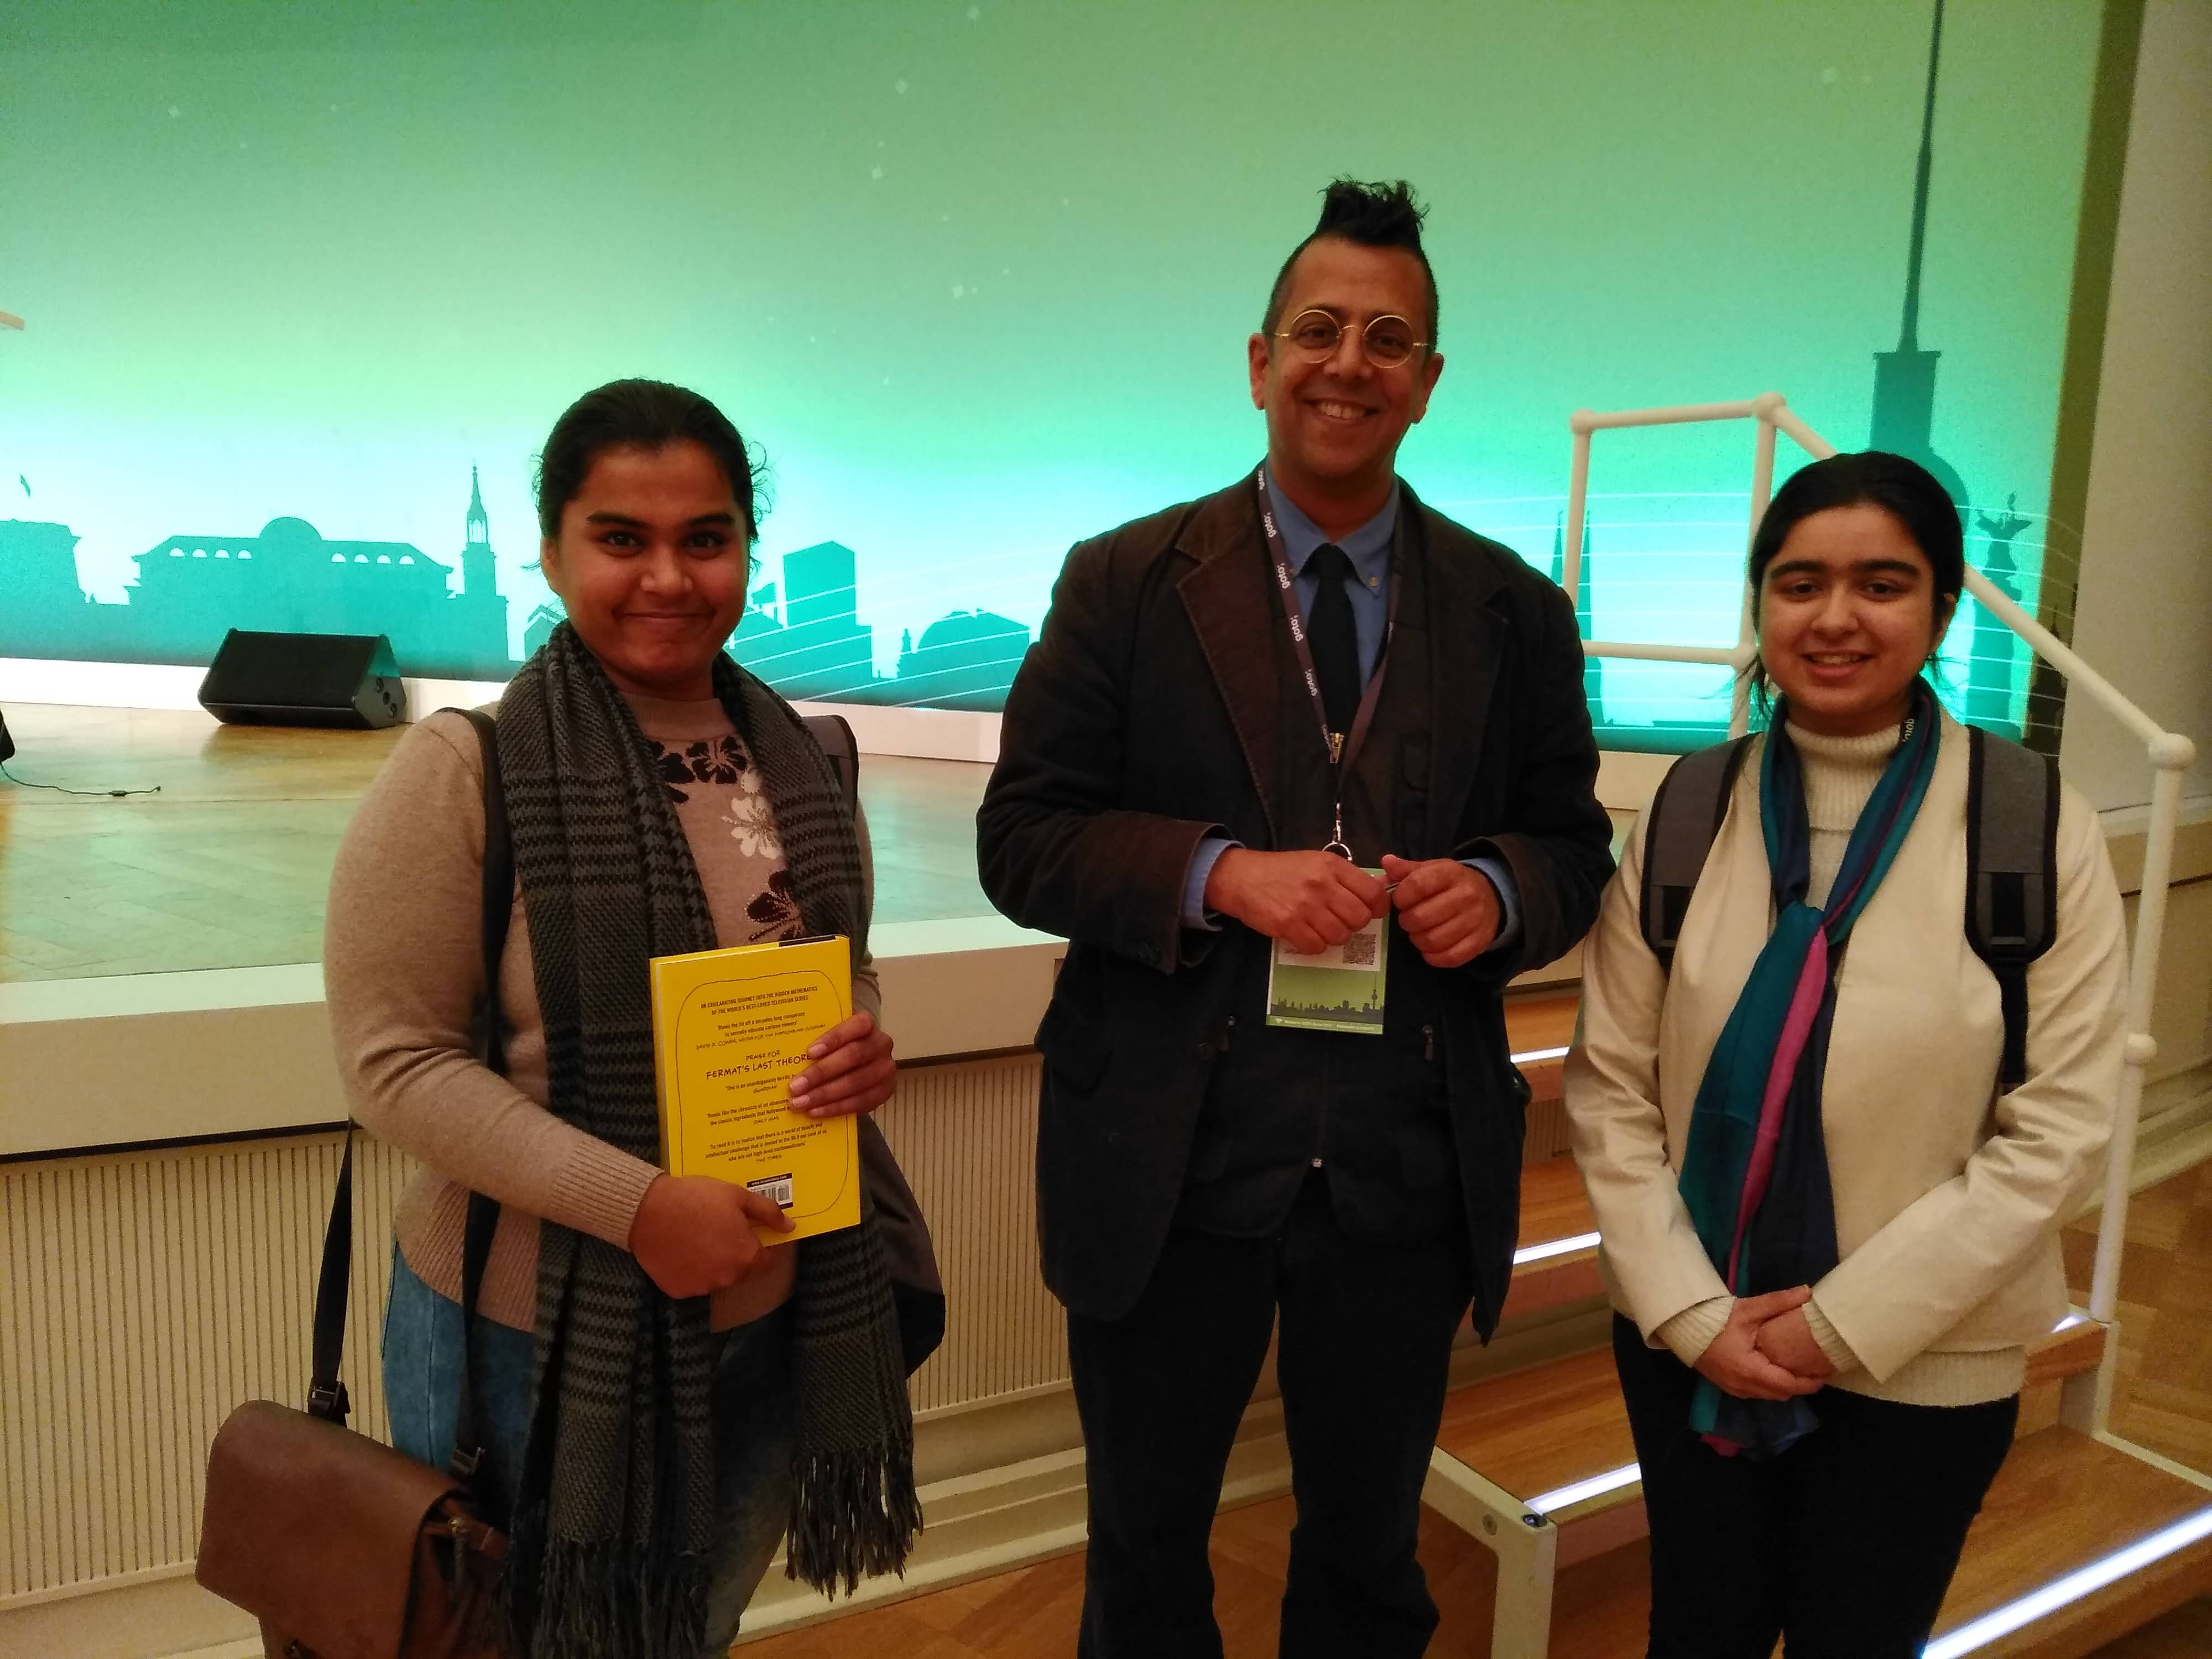 Rupal and Avneet with Simon Singh, a keynote speaker at GOTO Berlin